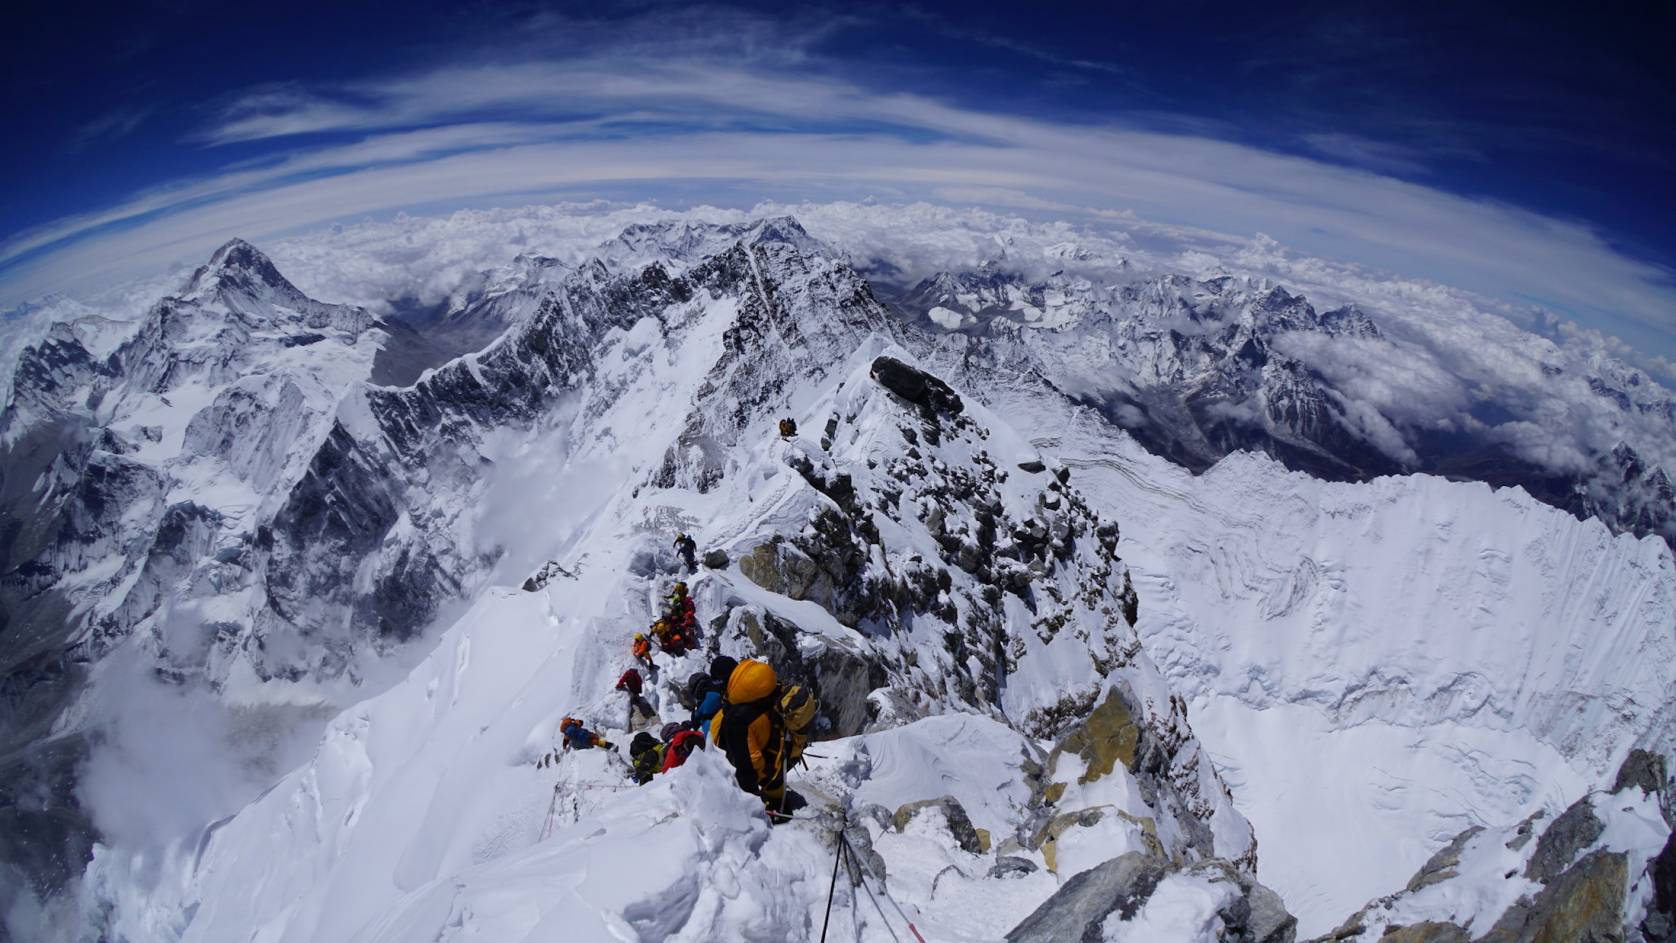 climbers on Everest in 2016